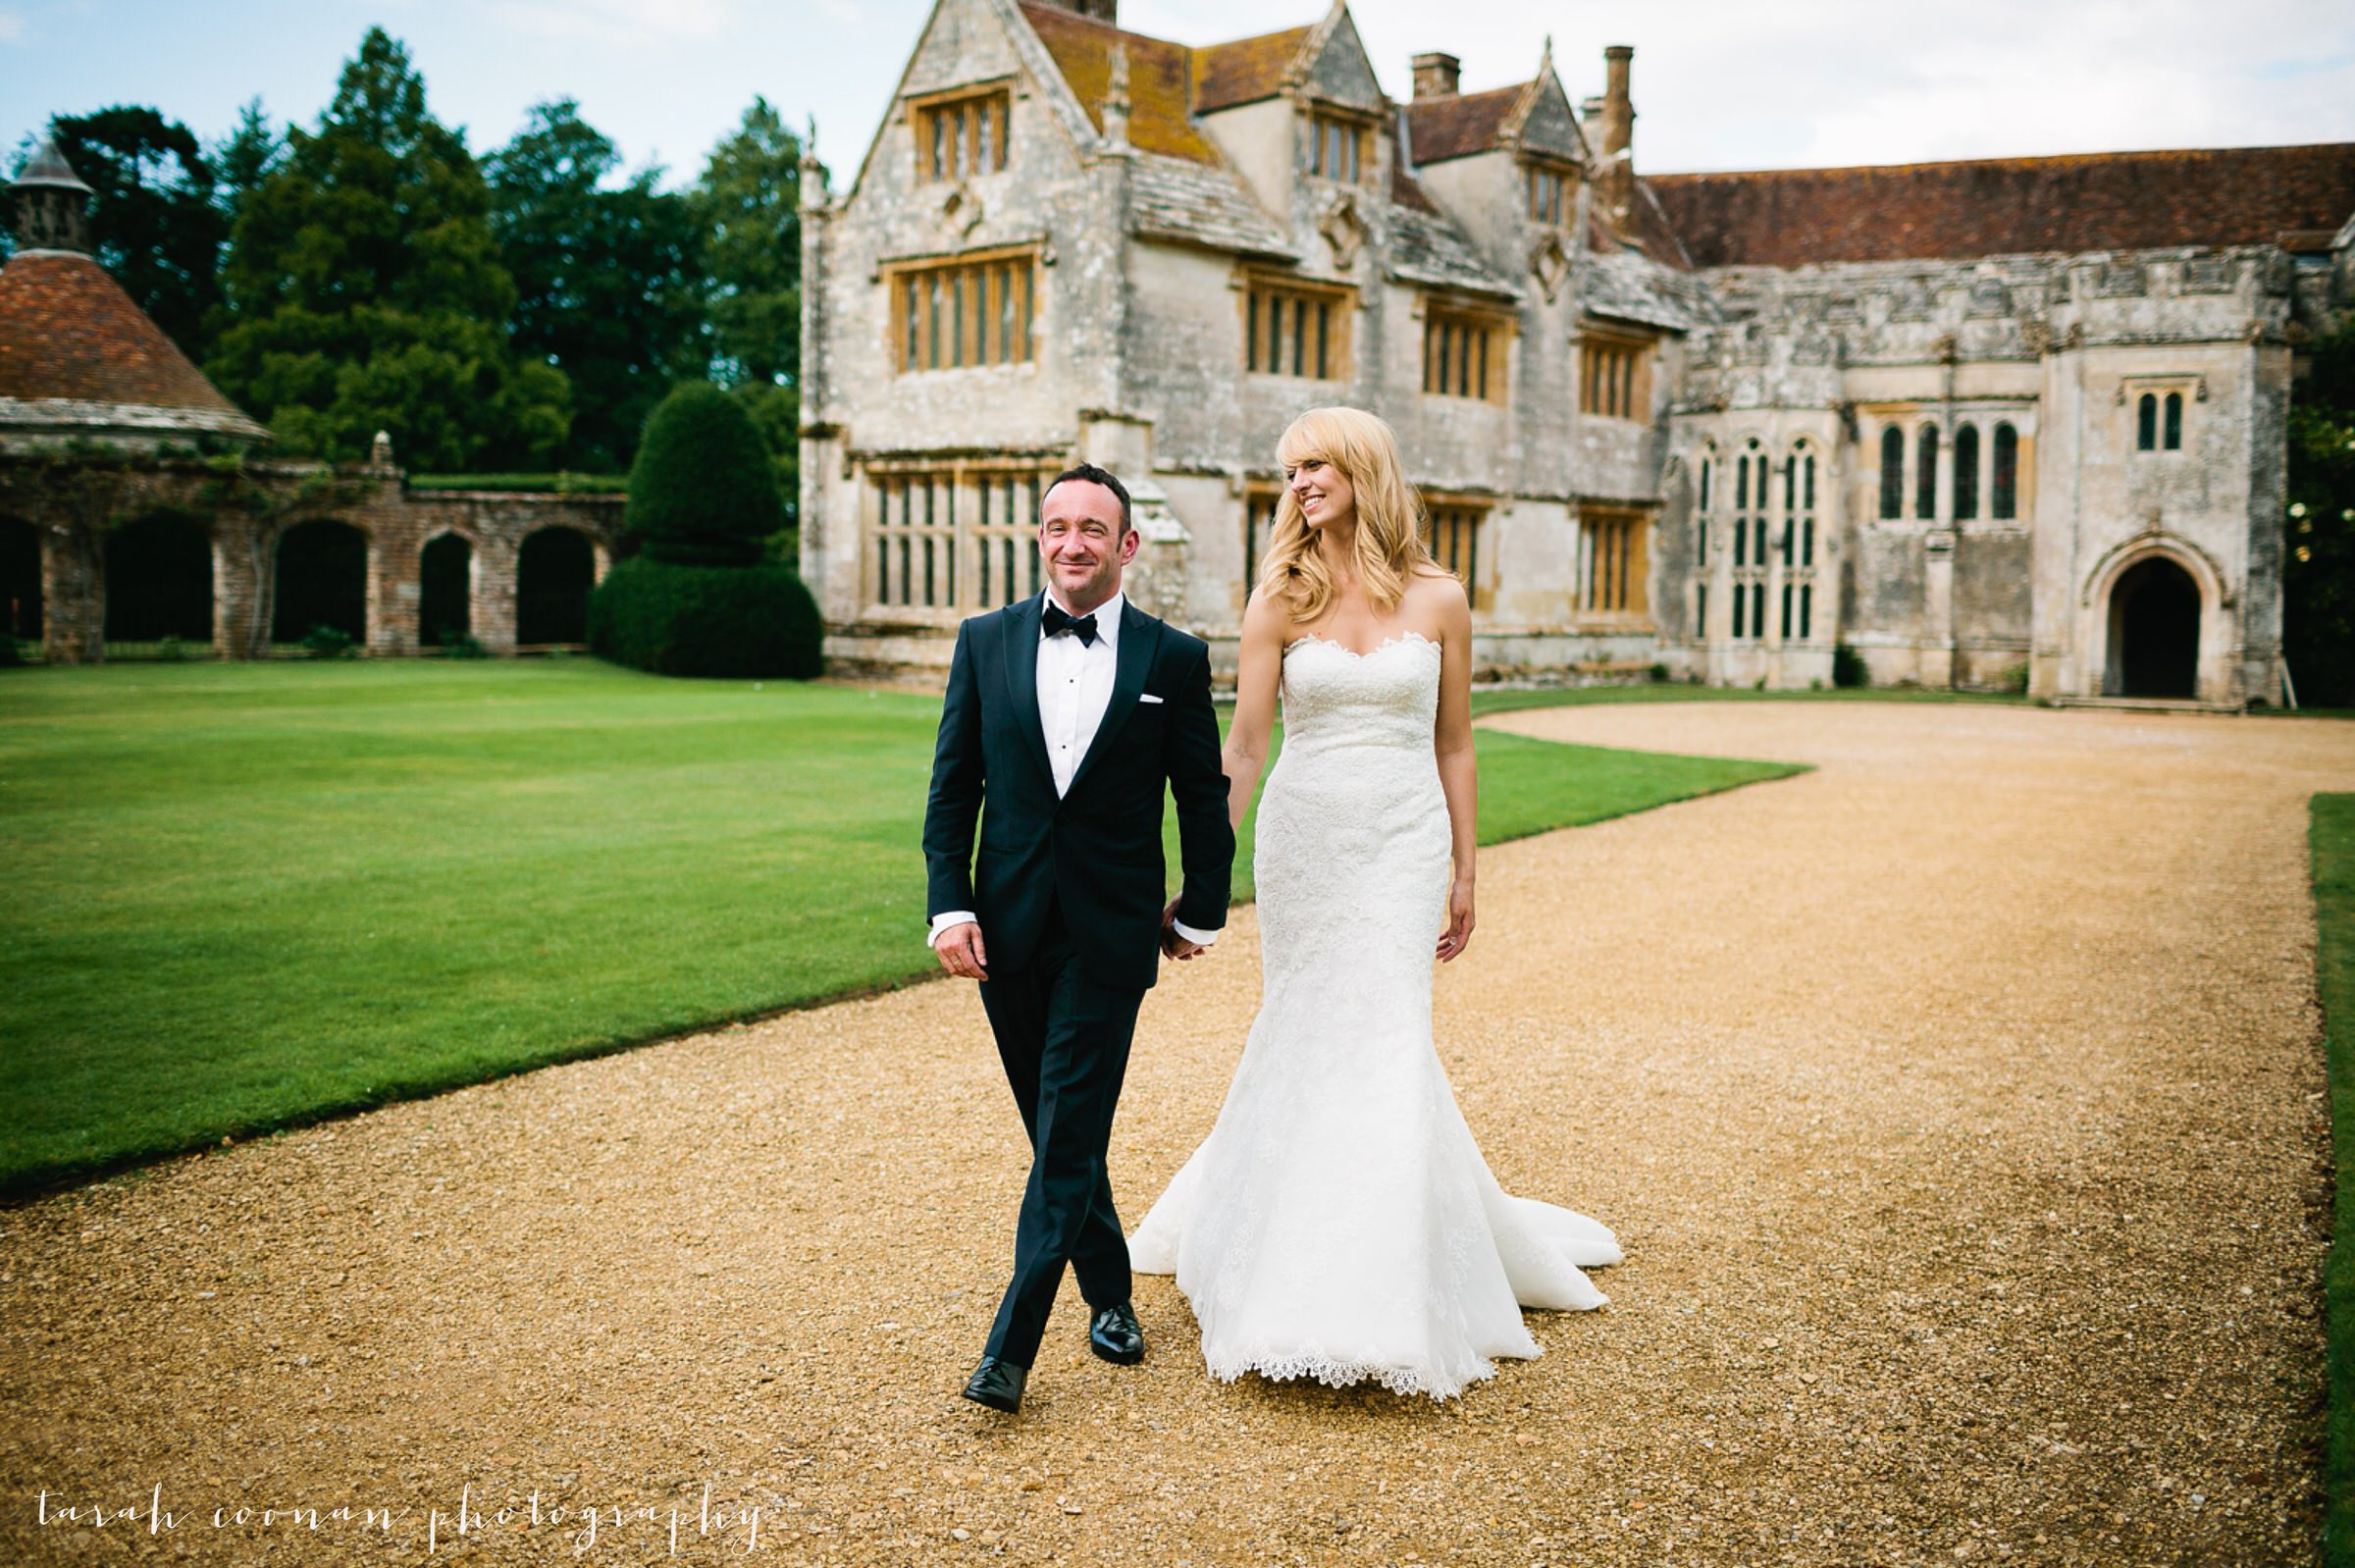 Athelhampton House wedding - Miranda & Steve